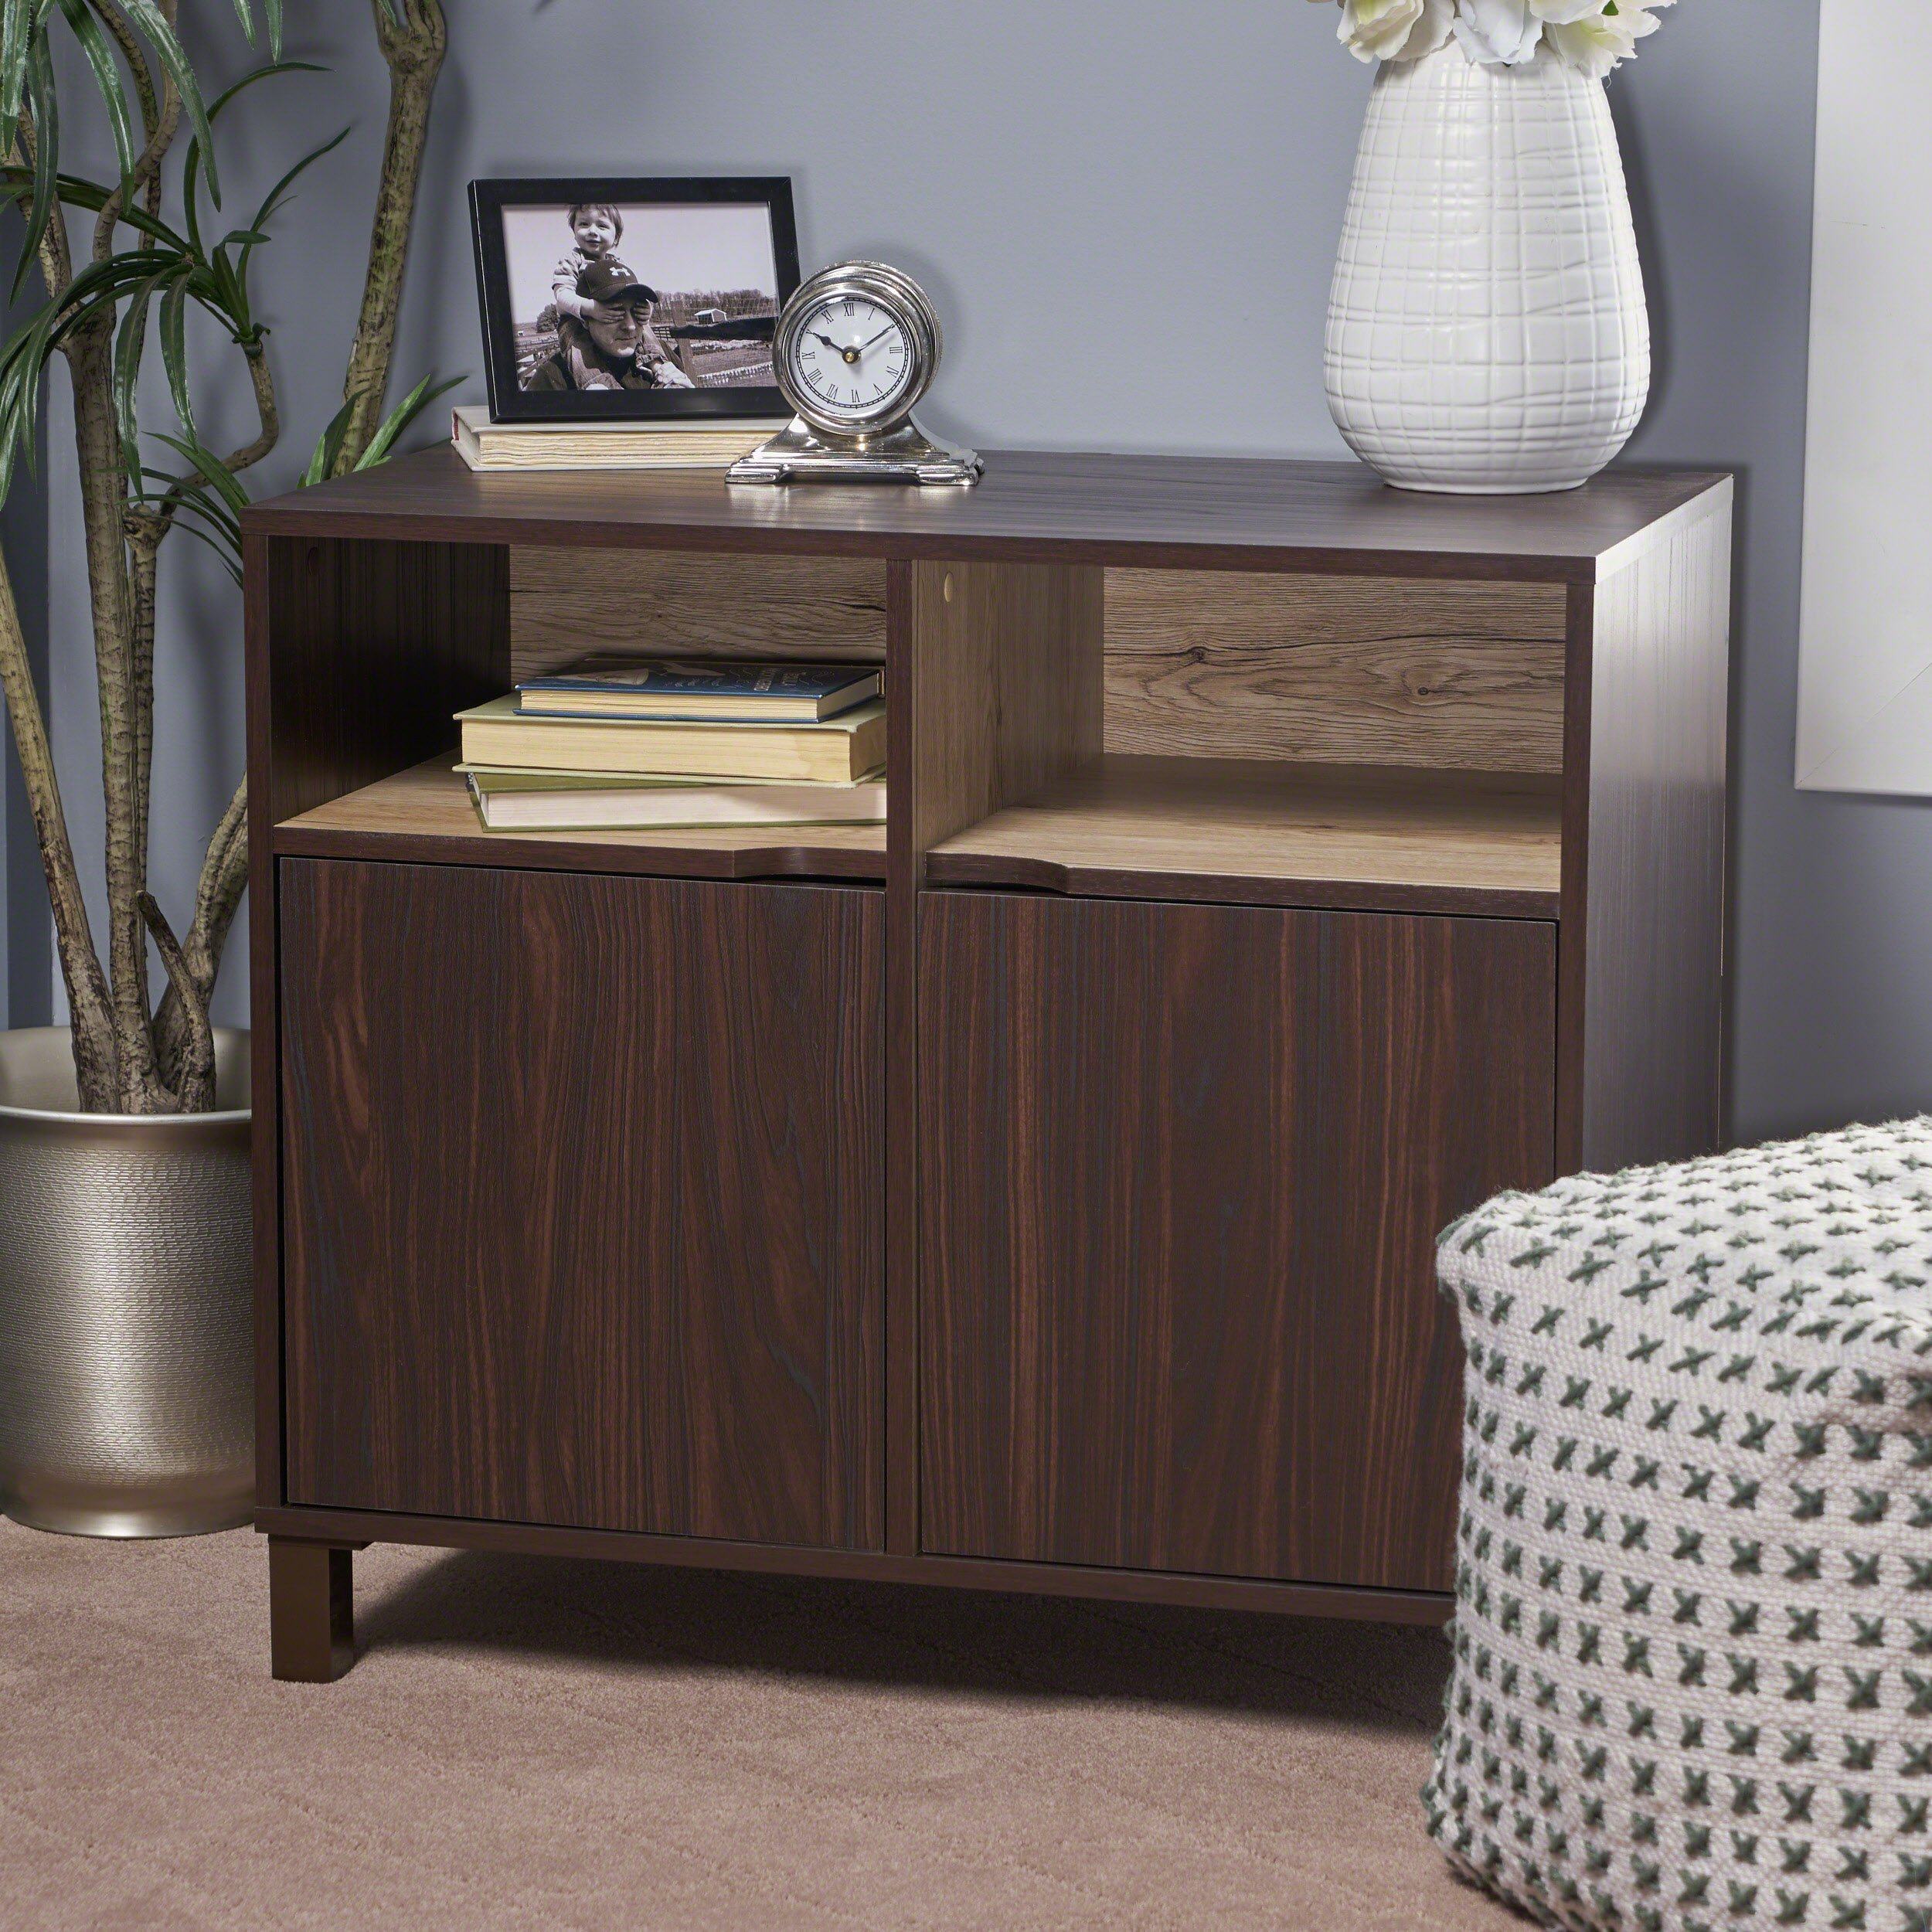 Provence 2-Shelf Walnut Finished Faux Wood Cabinet with Sanremo Oak Interior by Great Deal Furniture (Image #1)